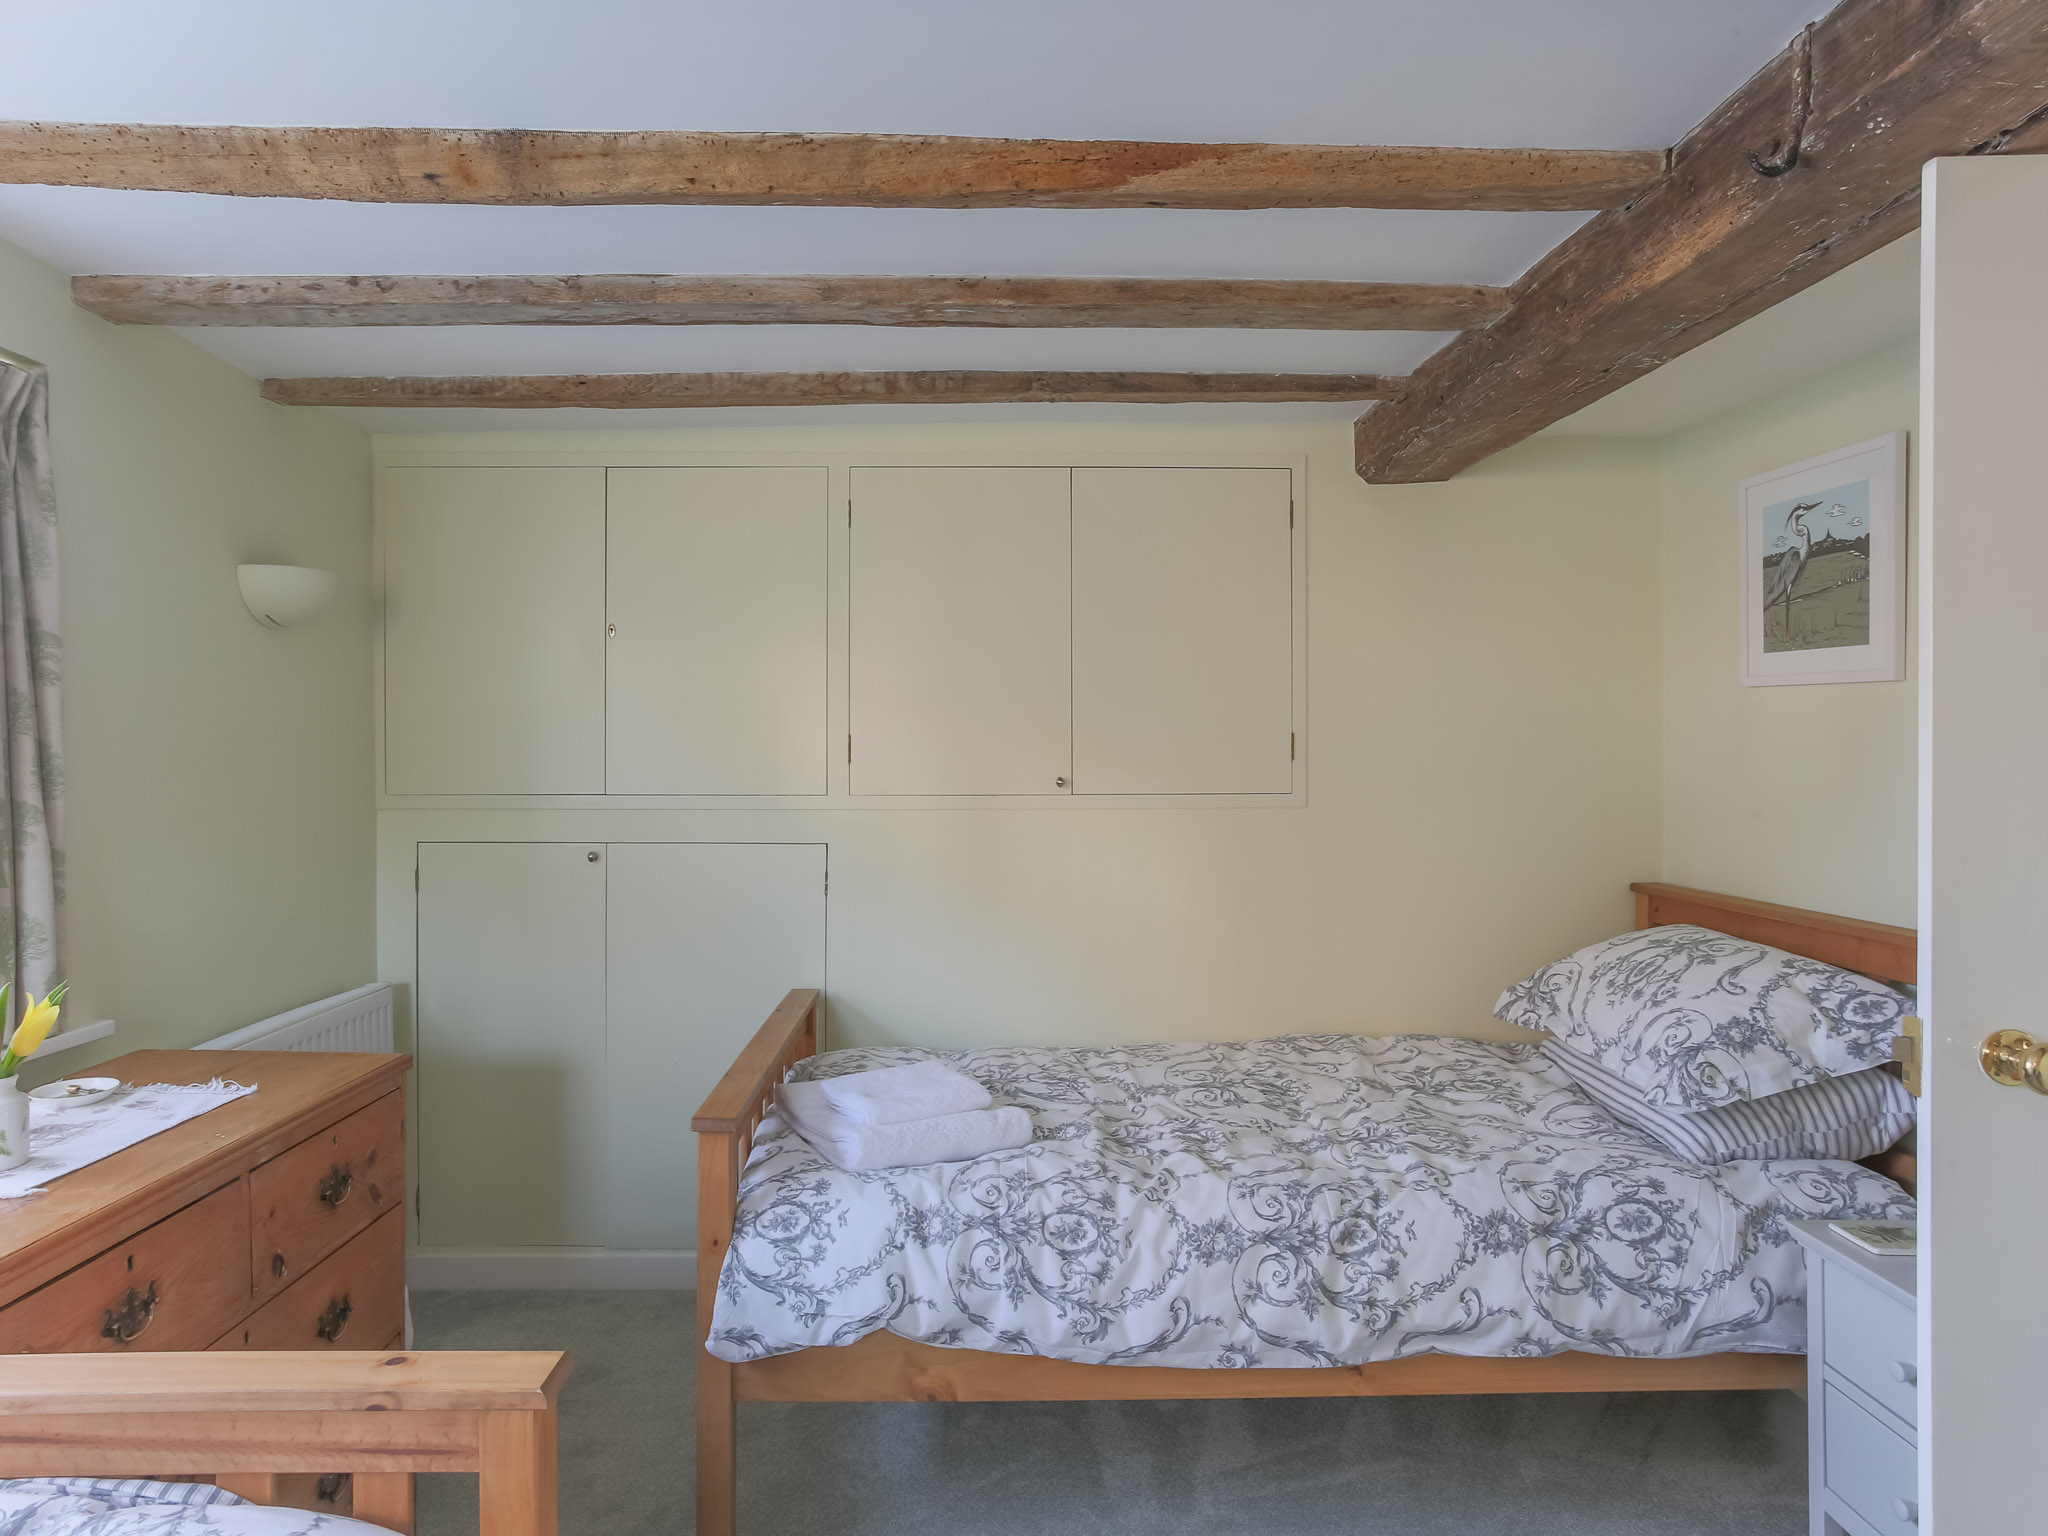 The room is cosy with built in cupboards to maximise space